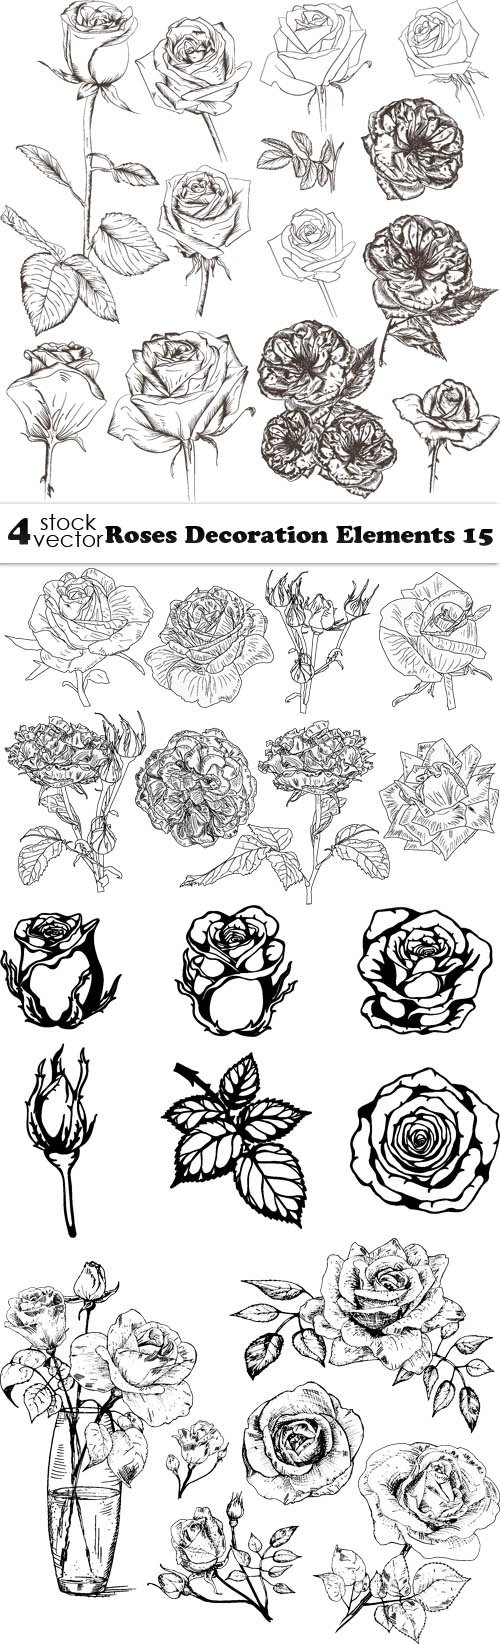 Vectors - Roses Decoration Elements 15